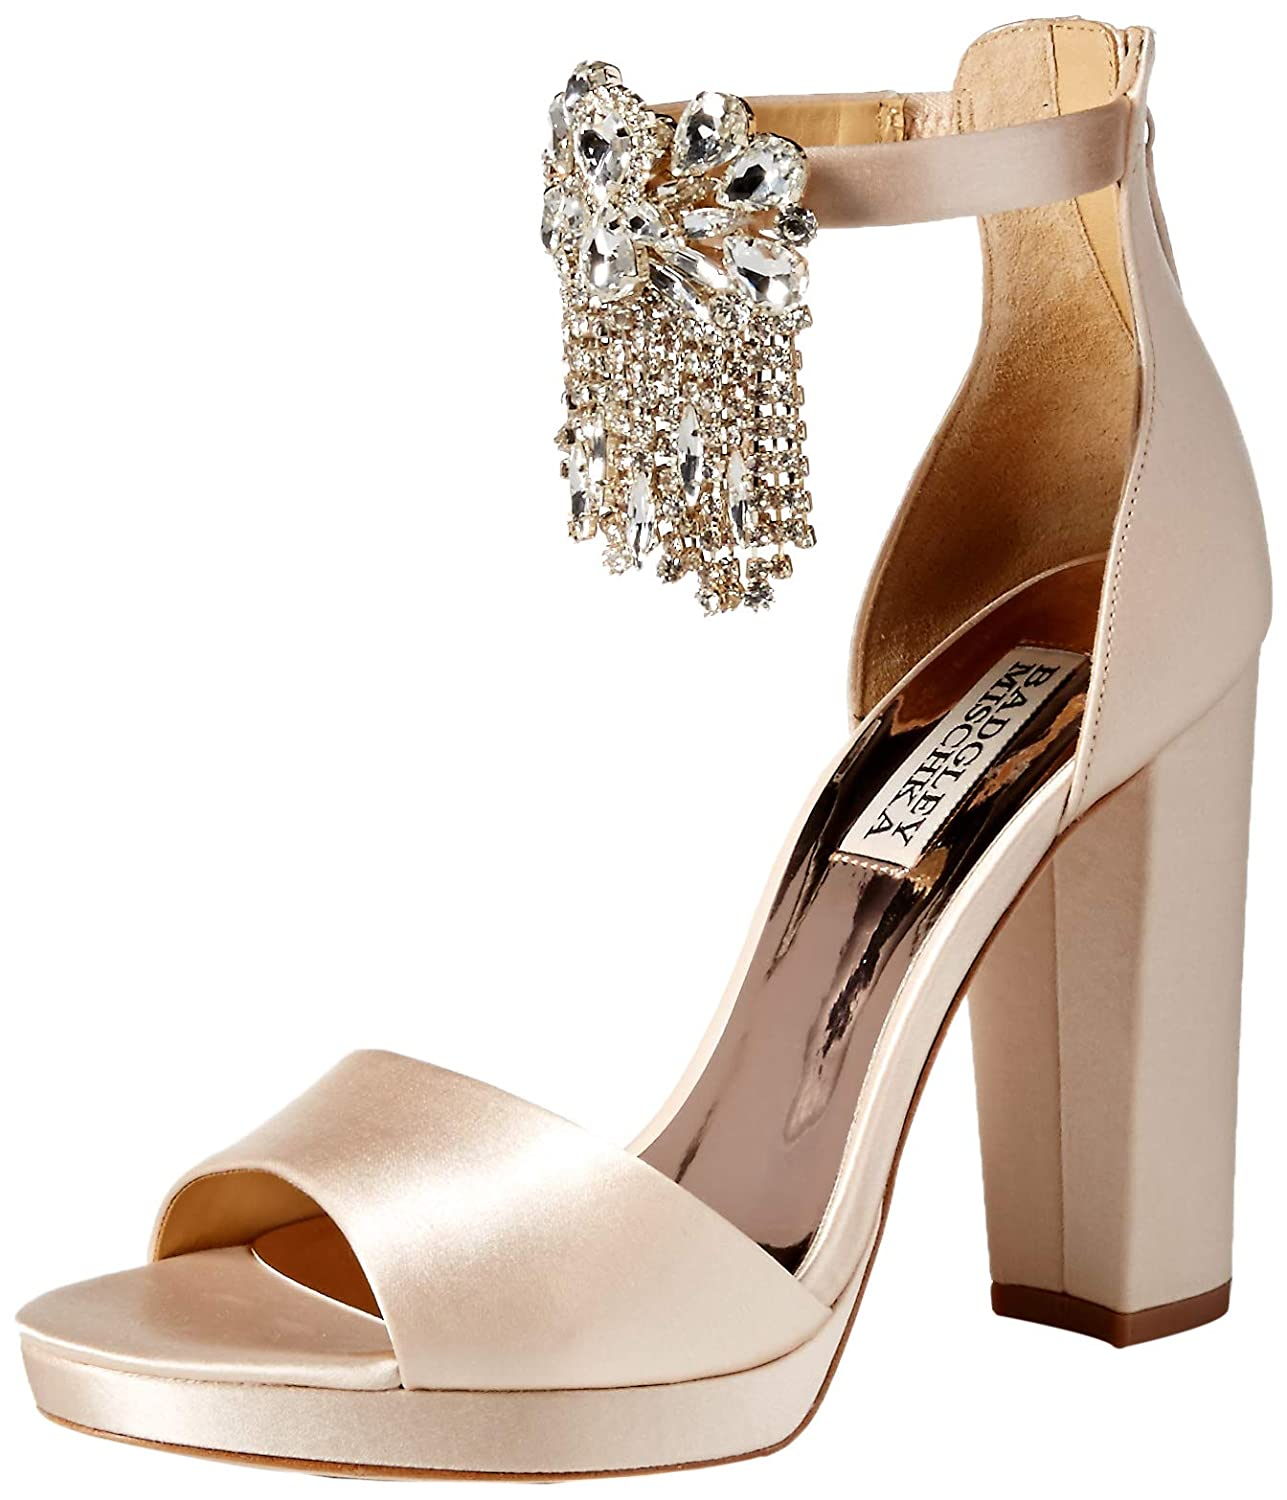 Soft Nude Badgley Mischka Womens Fascinate Heeled Sandal